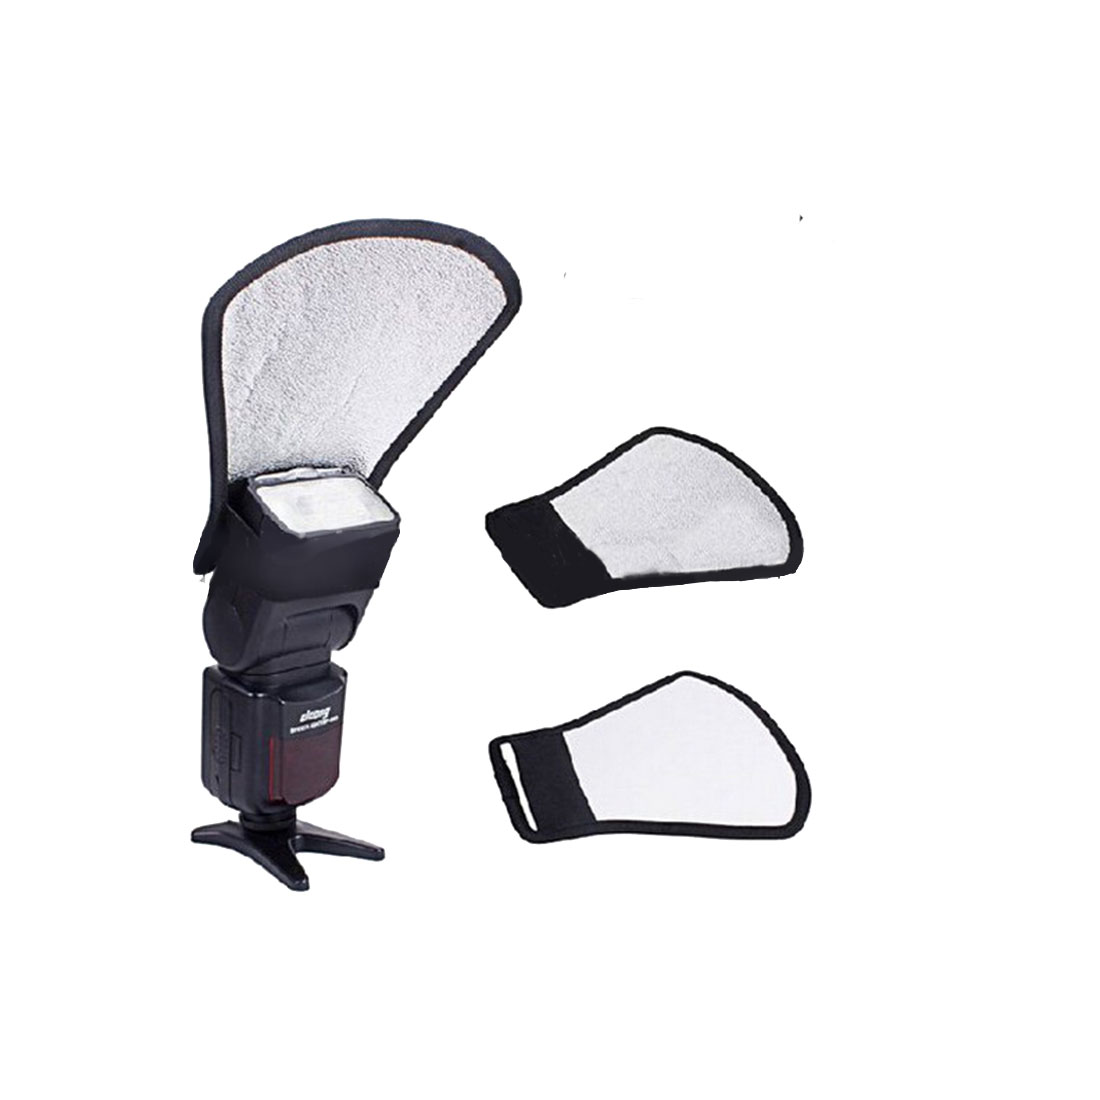 High quality Softbox Flash Diffuser Reflector for most kinds of SLR camera Speedlite Photography Studio Accessories 11*18*20cm